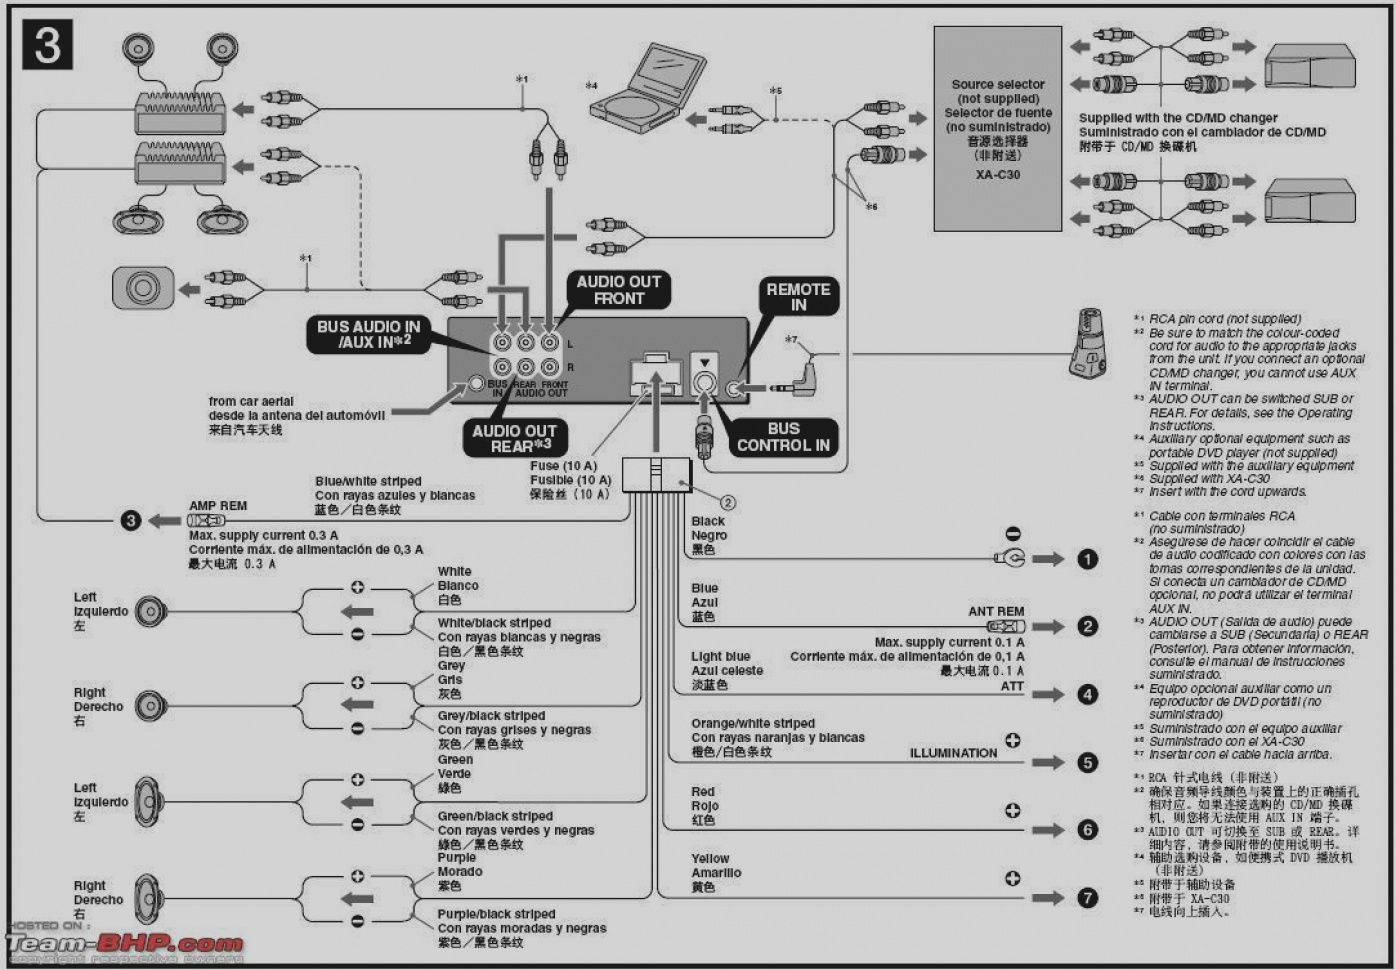 sony cdx gt170 wiring diagram heat sony xplod, diagram, 3 way Sony Xplod CDX -GT35UW Wiring-Diagram